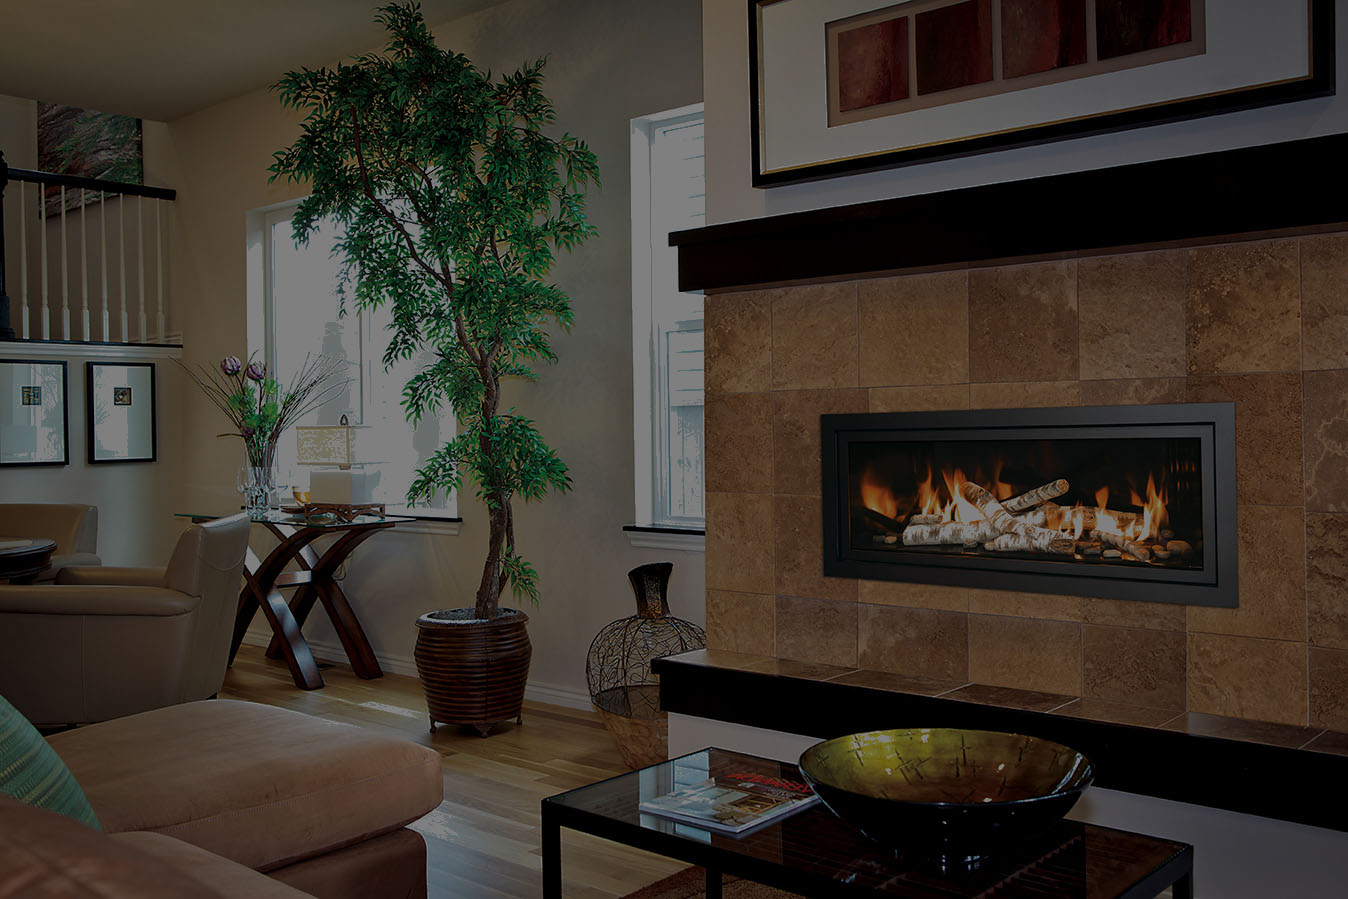 Southwest Brick And Fireplace